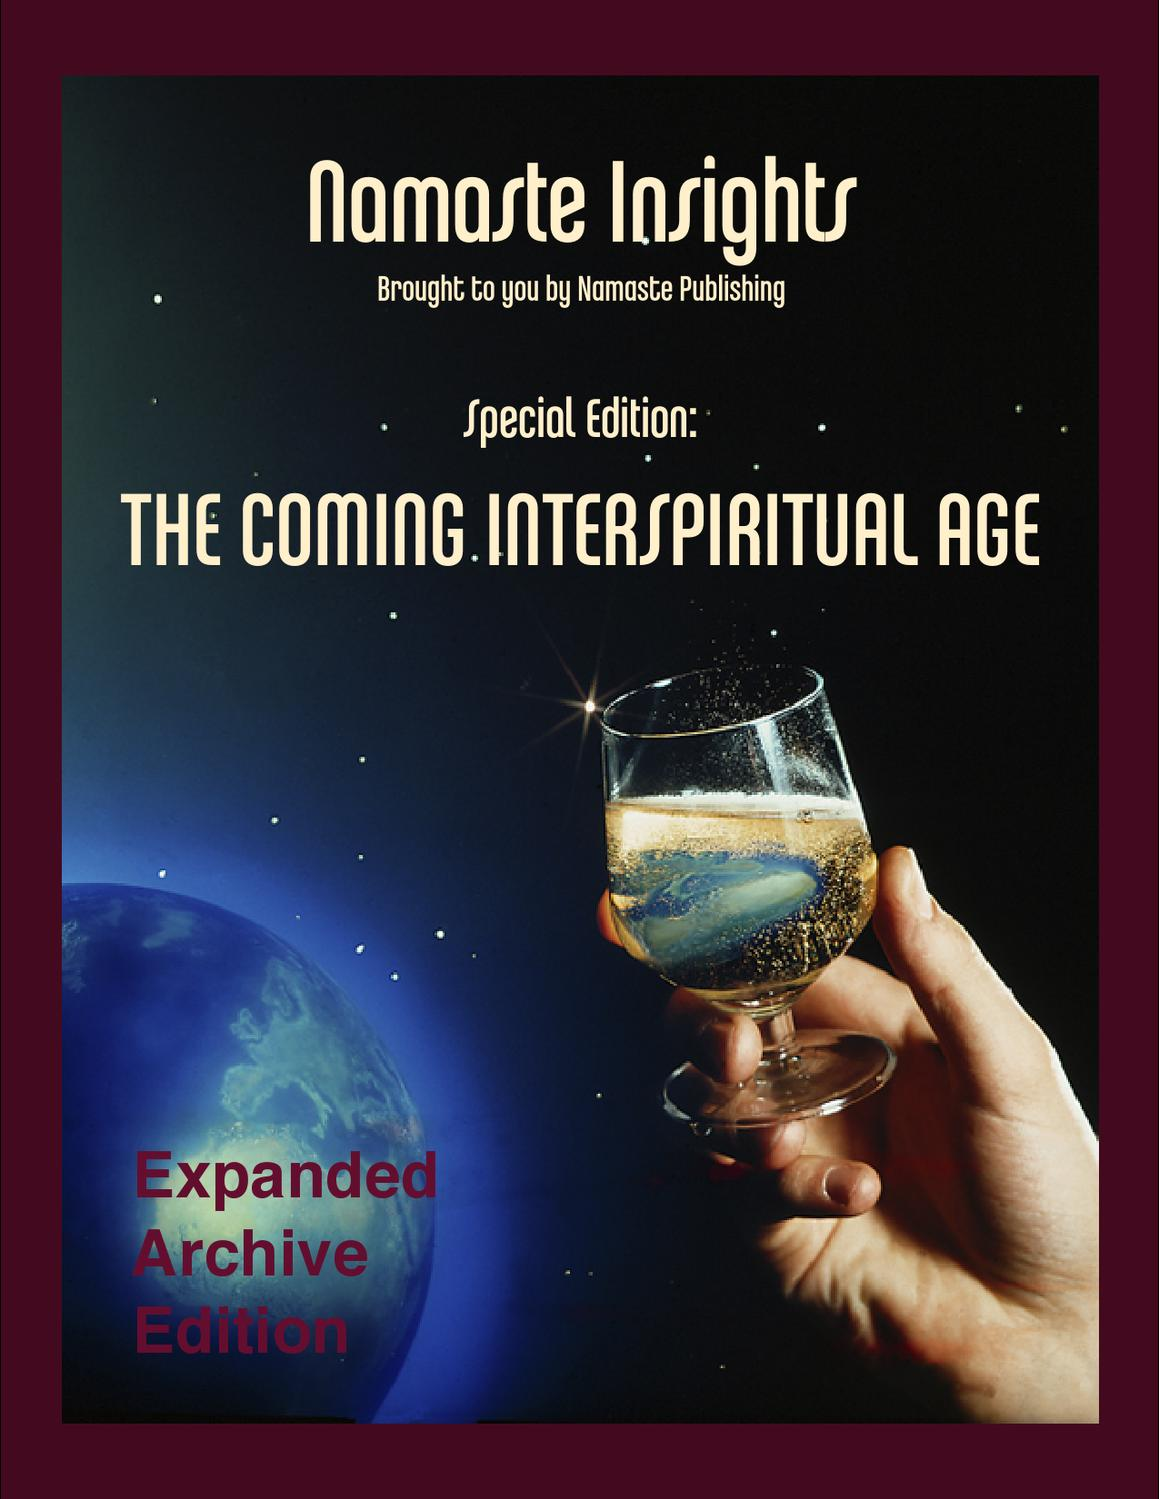 The Coming Interspiritual--Archive Edition